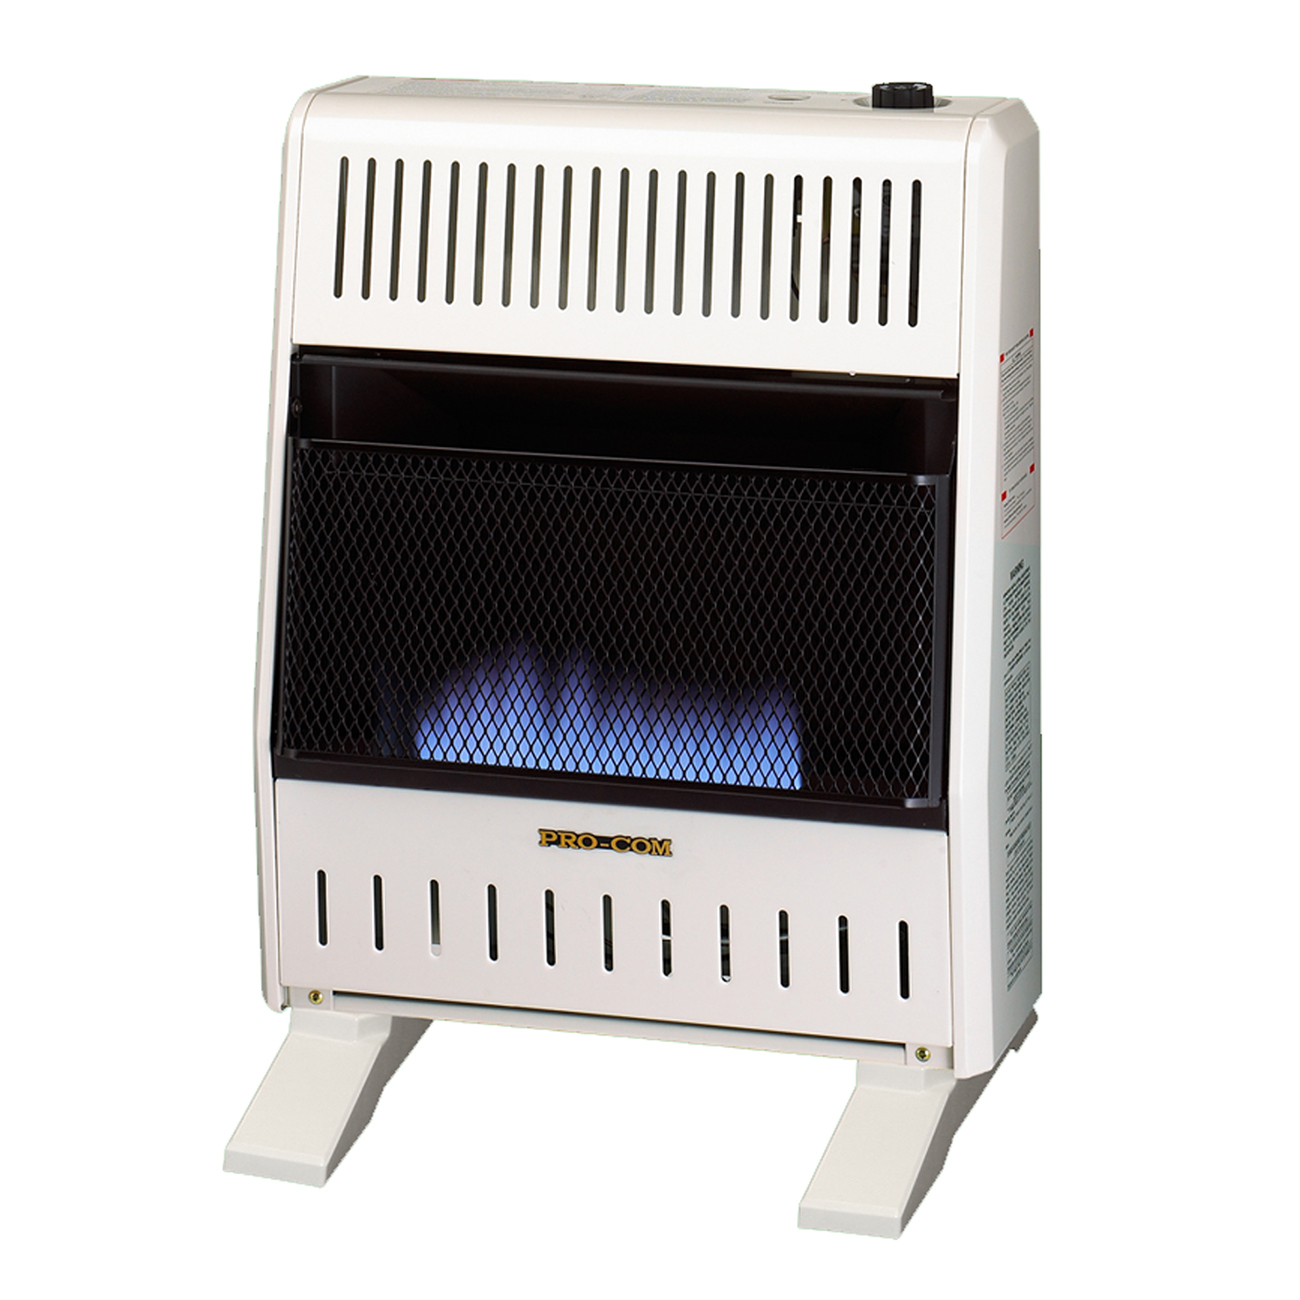 Dual fuel blue flame ventless wall heater 20 000 btu for Heating options for homes without gas